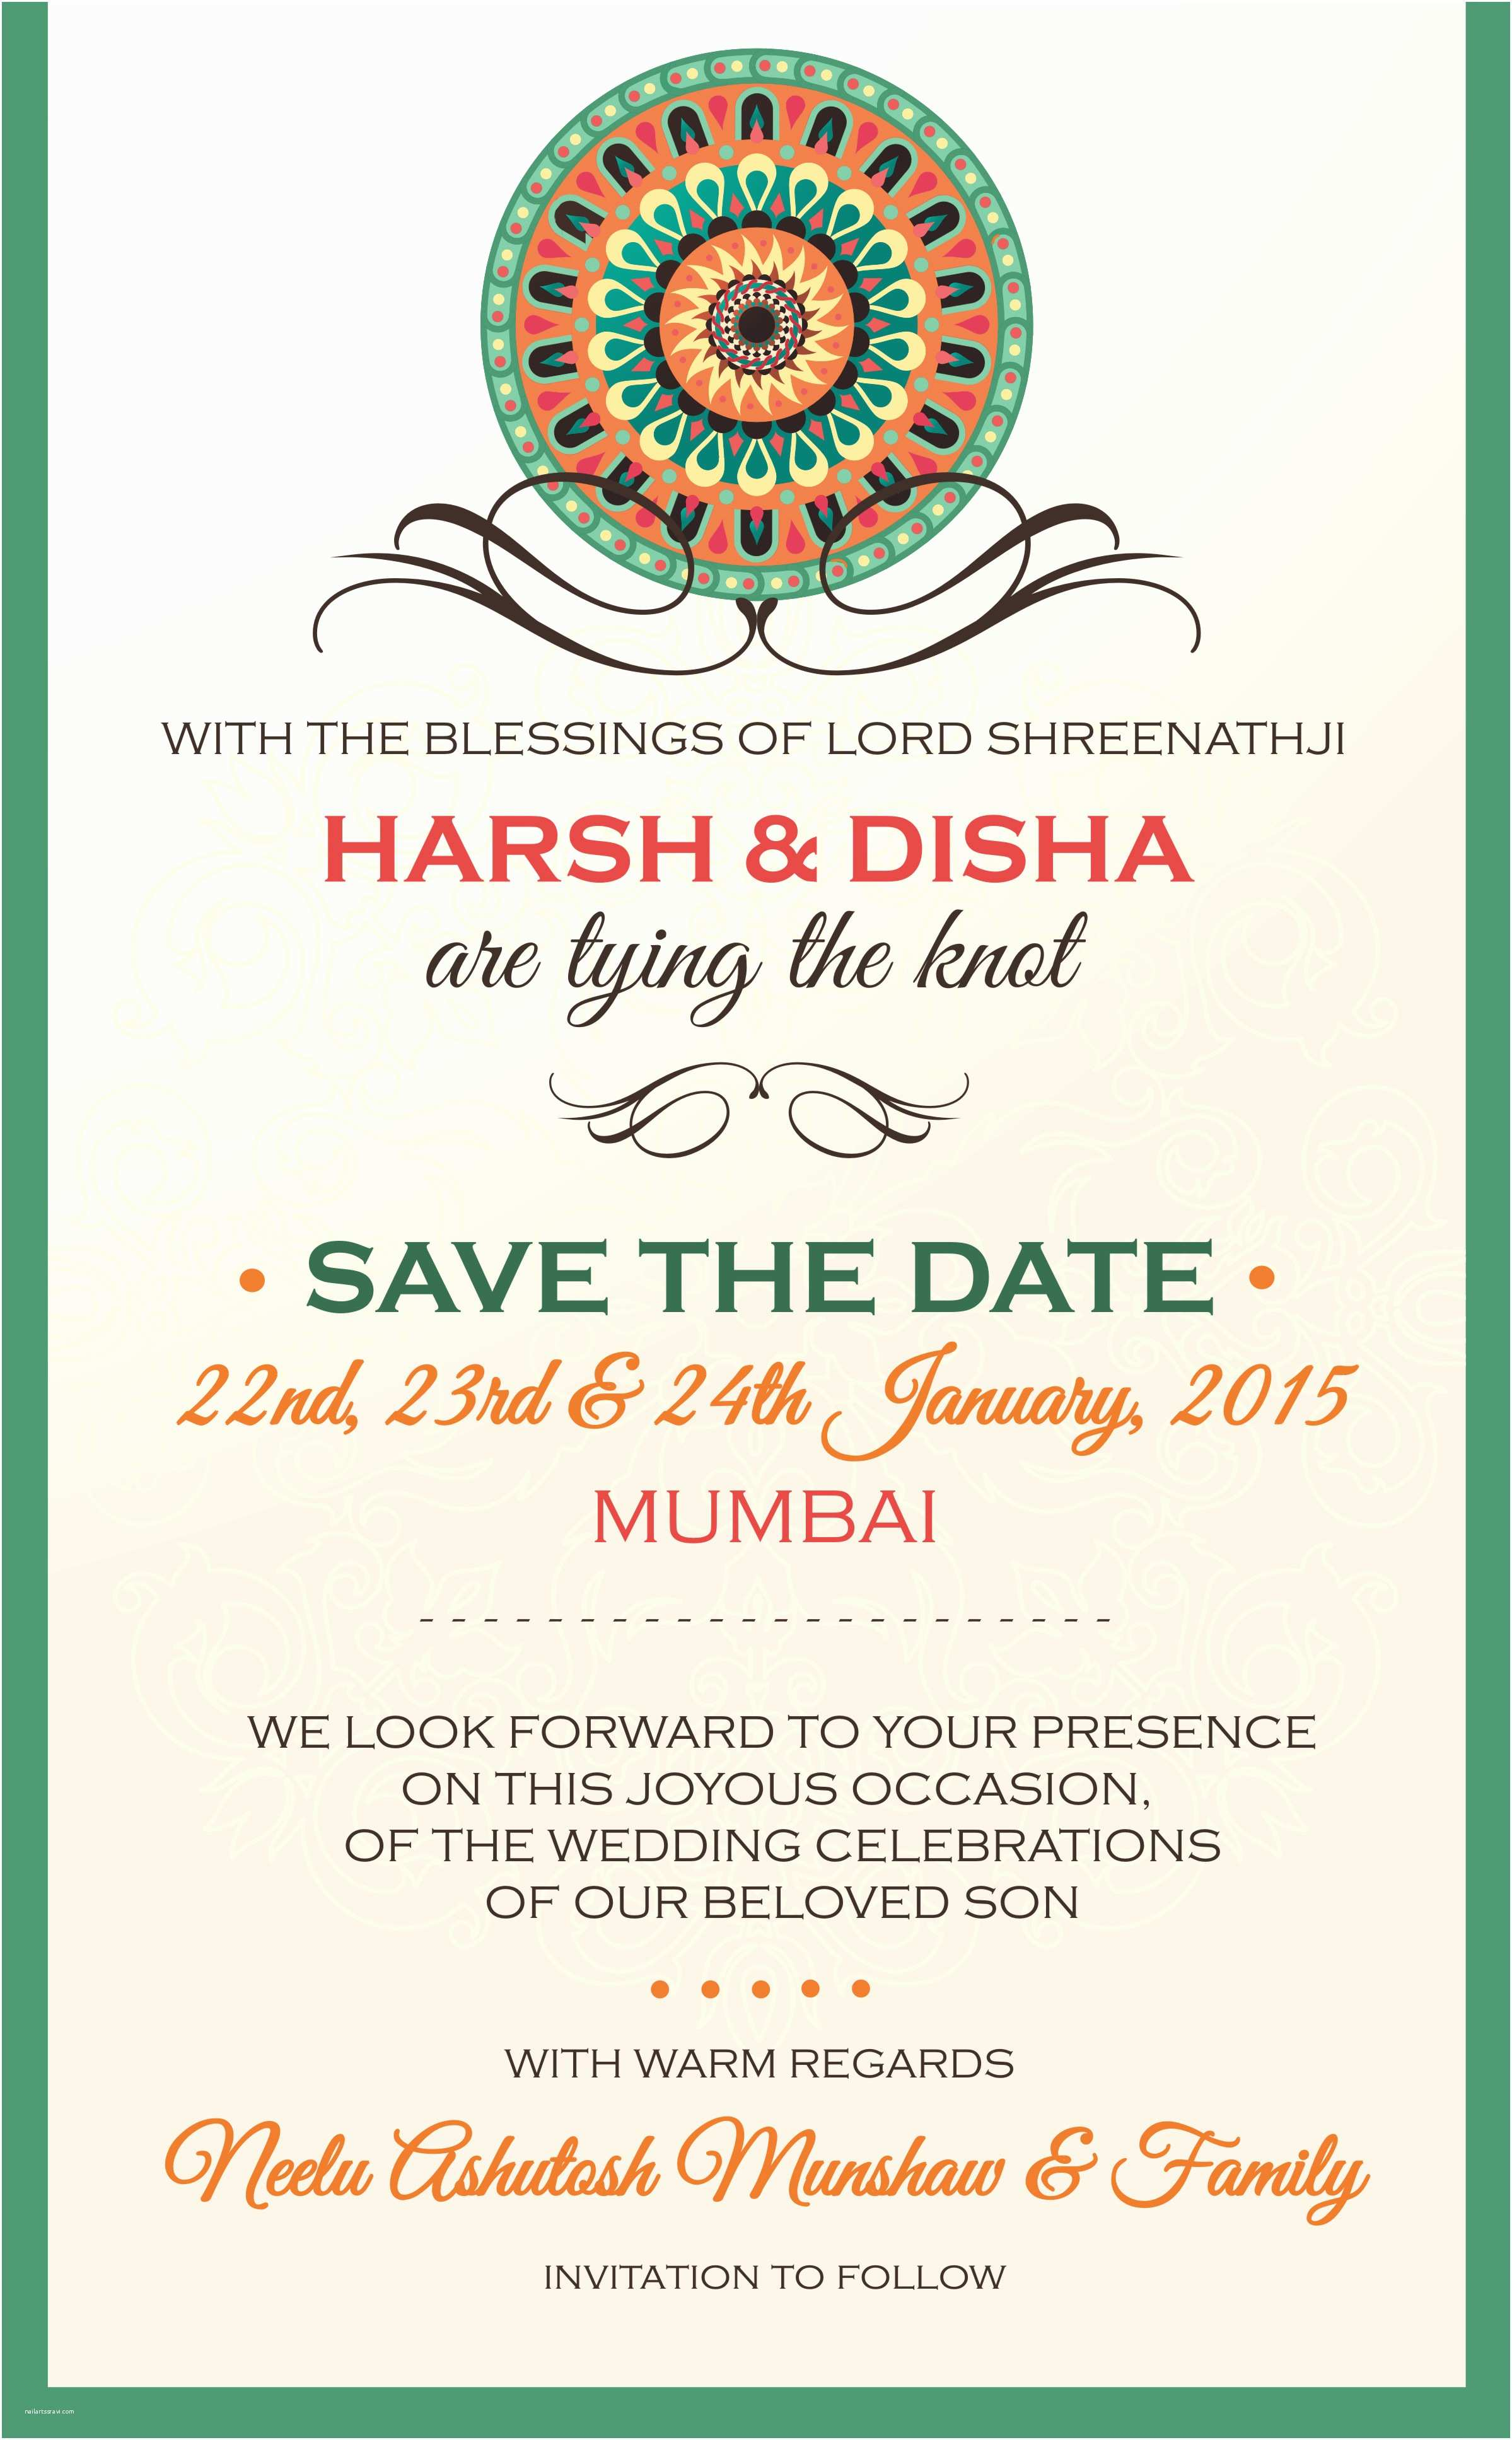 Indian Wedding Invitation Card Maker software Free Download Invitation Maker Geelong Gallery Invitation Sample and